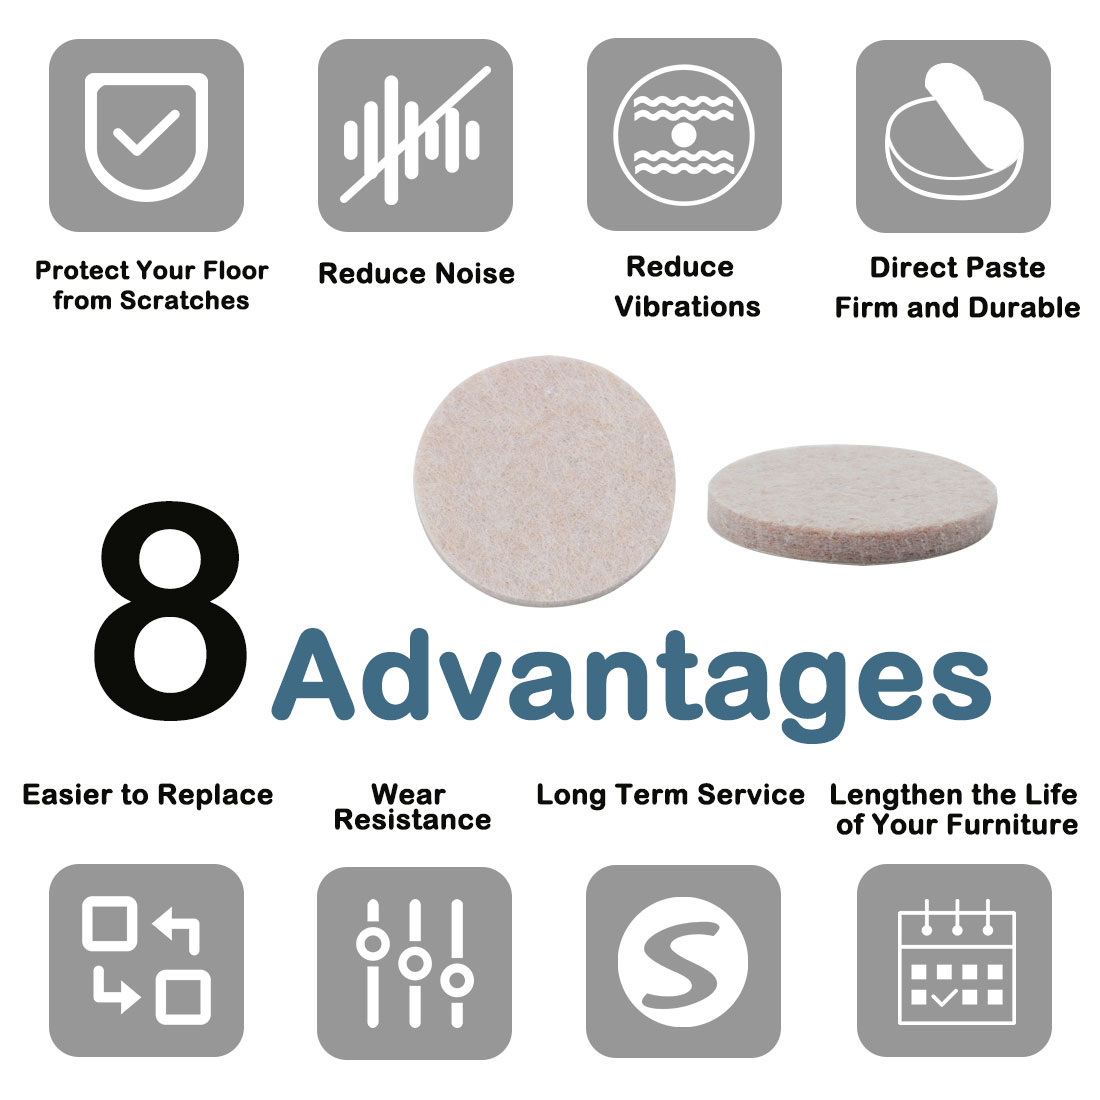 "Furniture Pads Round 1 1/2"" Self-stick Anti-scratch Table Floor Protector 36pcs - image 4 de 7"